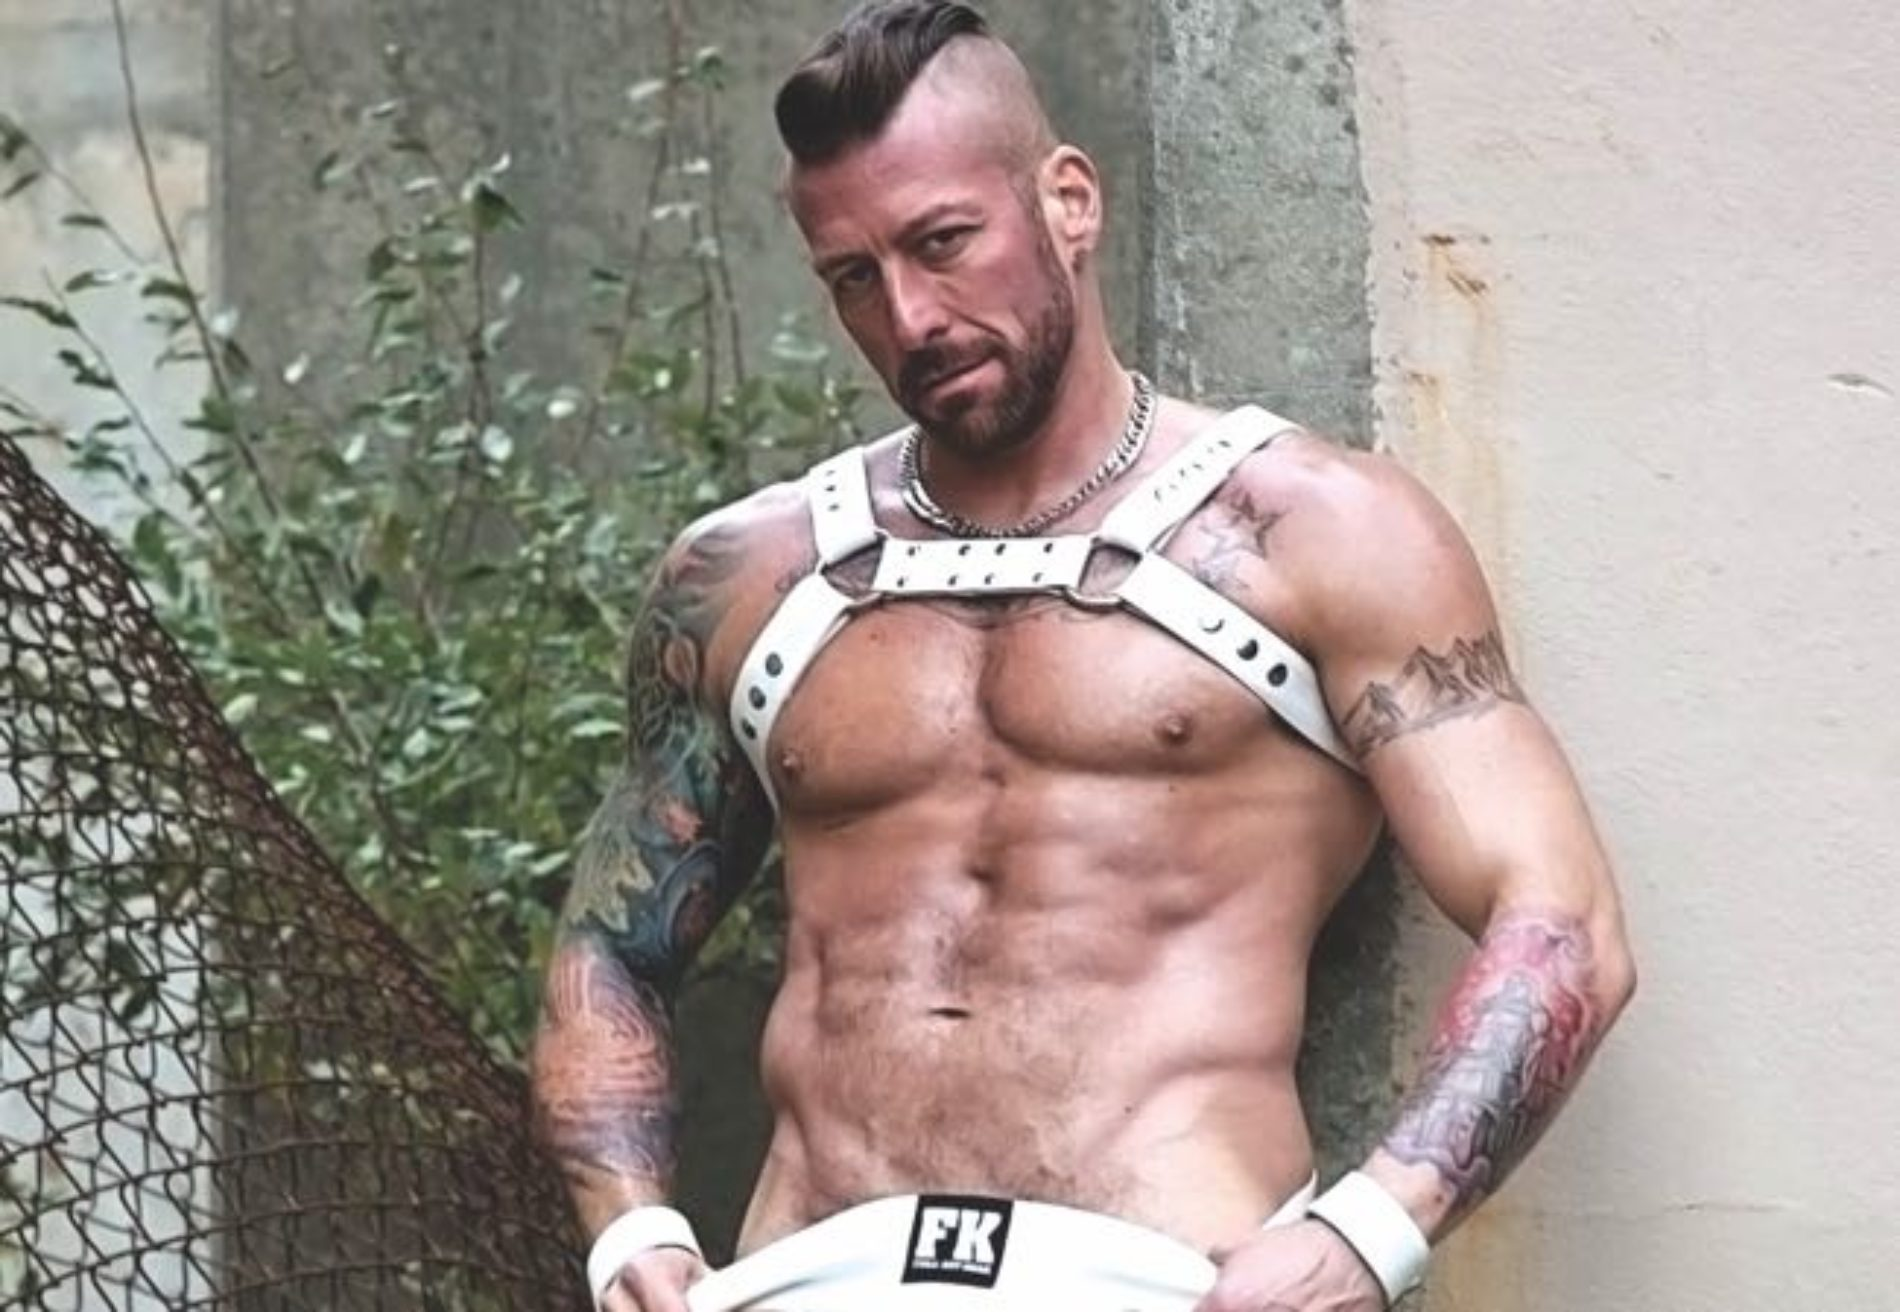 Gay porn star Hugh Hunter calls out GayVN Awards for racism and turns down nominations